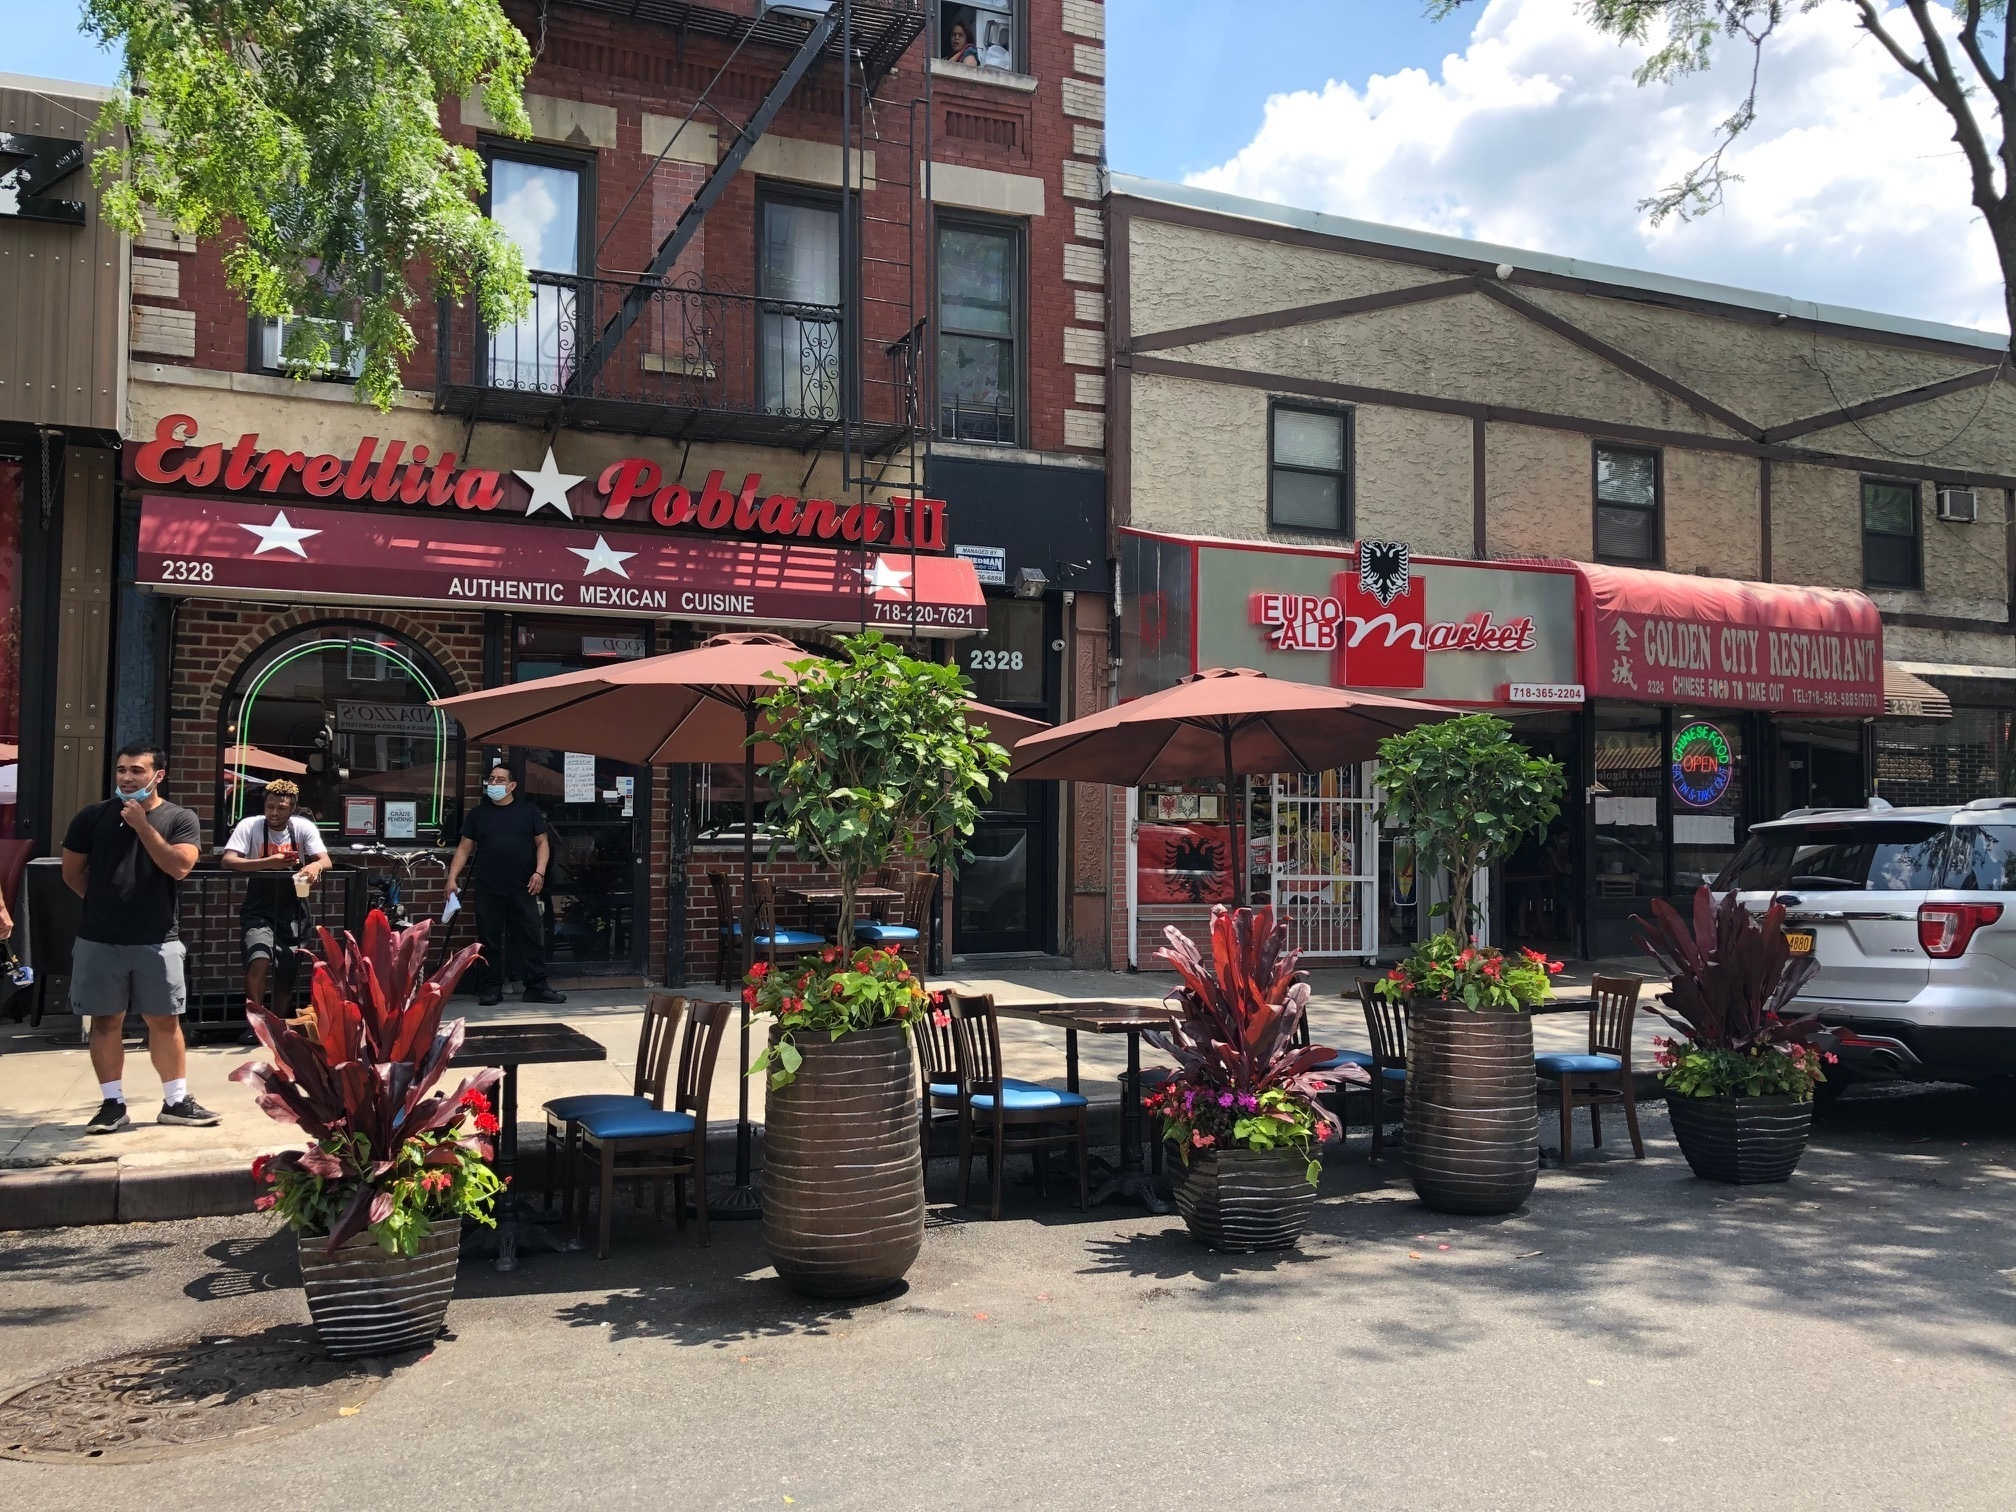 The Bronx's Little Italy plans to open piazza-style outdoor dining on weekends